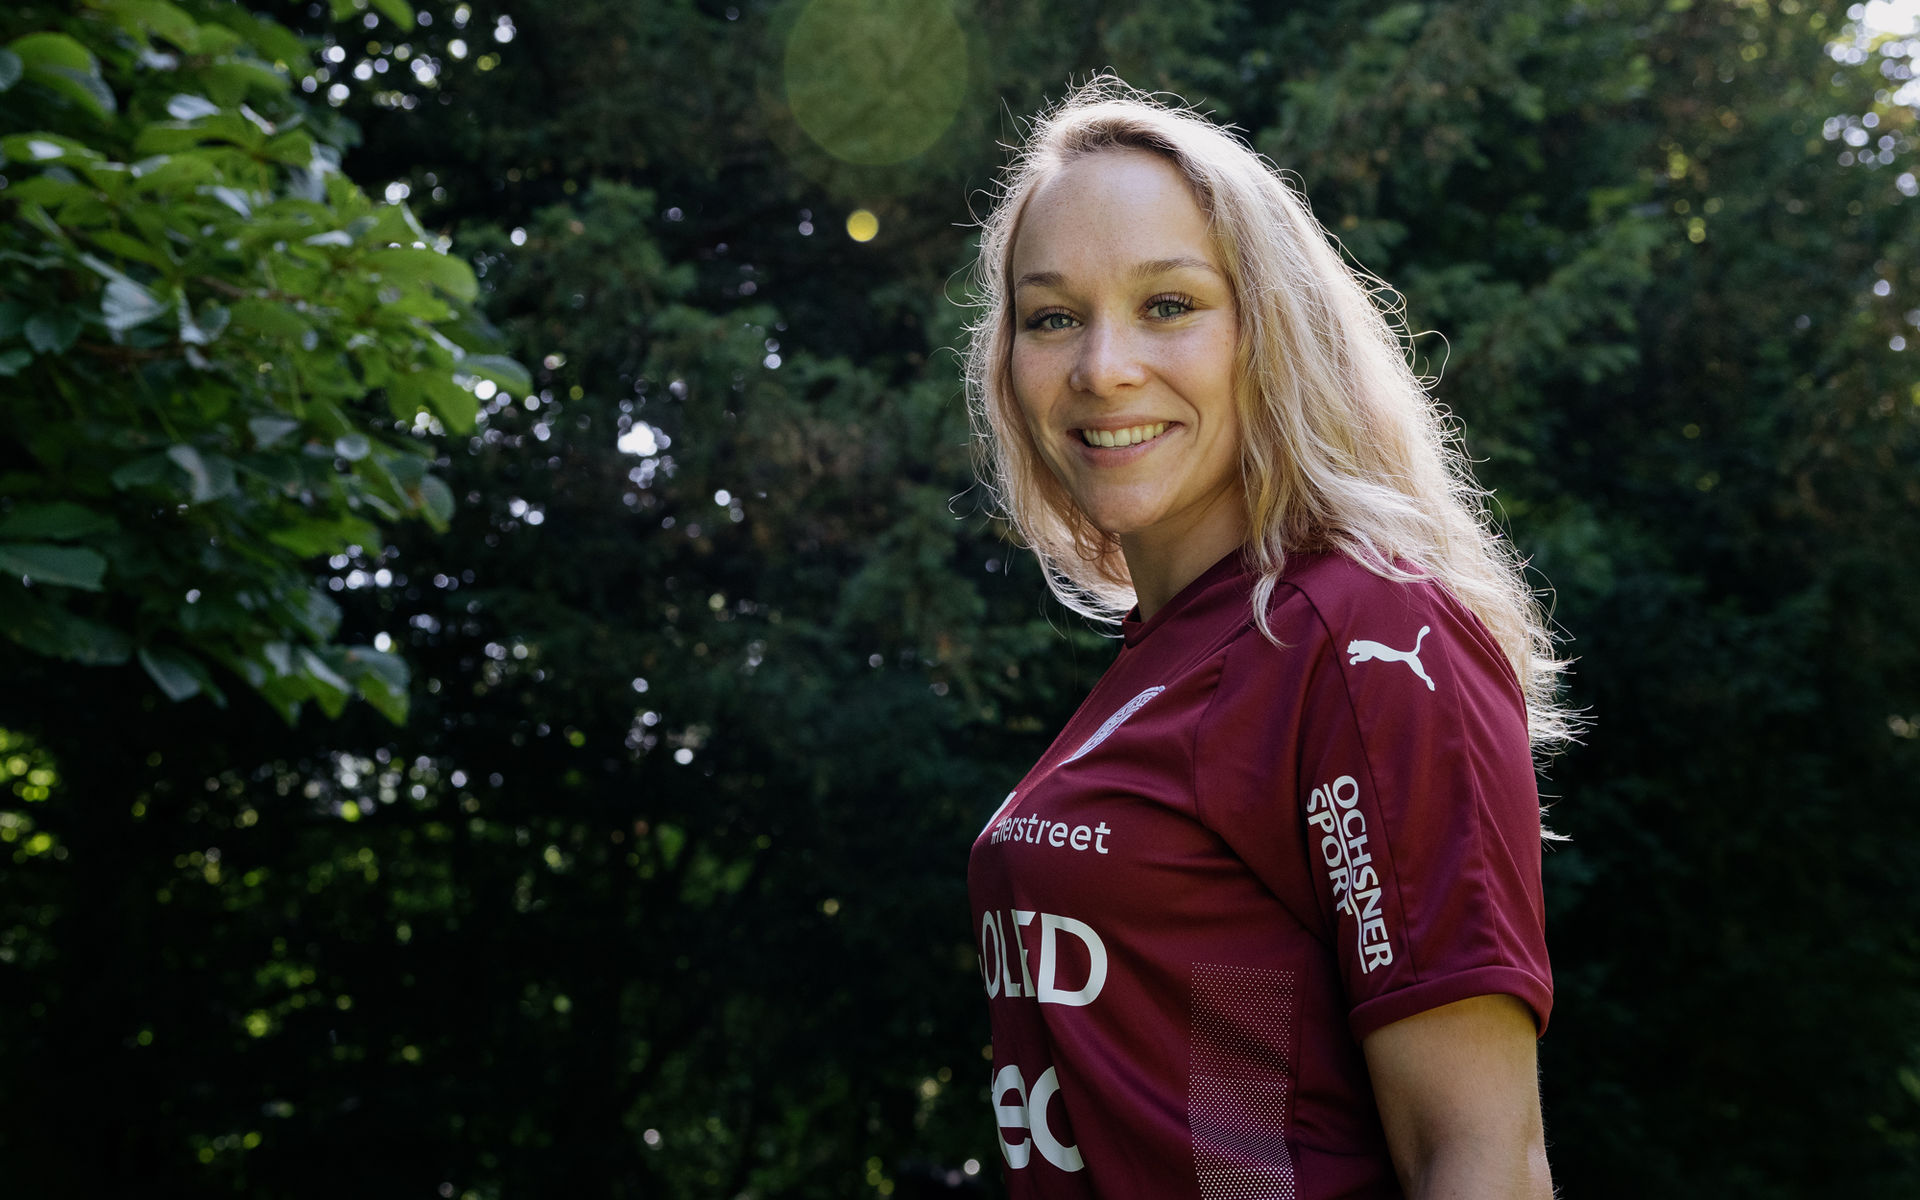 Marine: Pictet intern and Champions League player